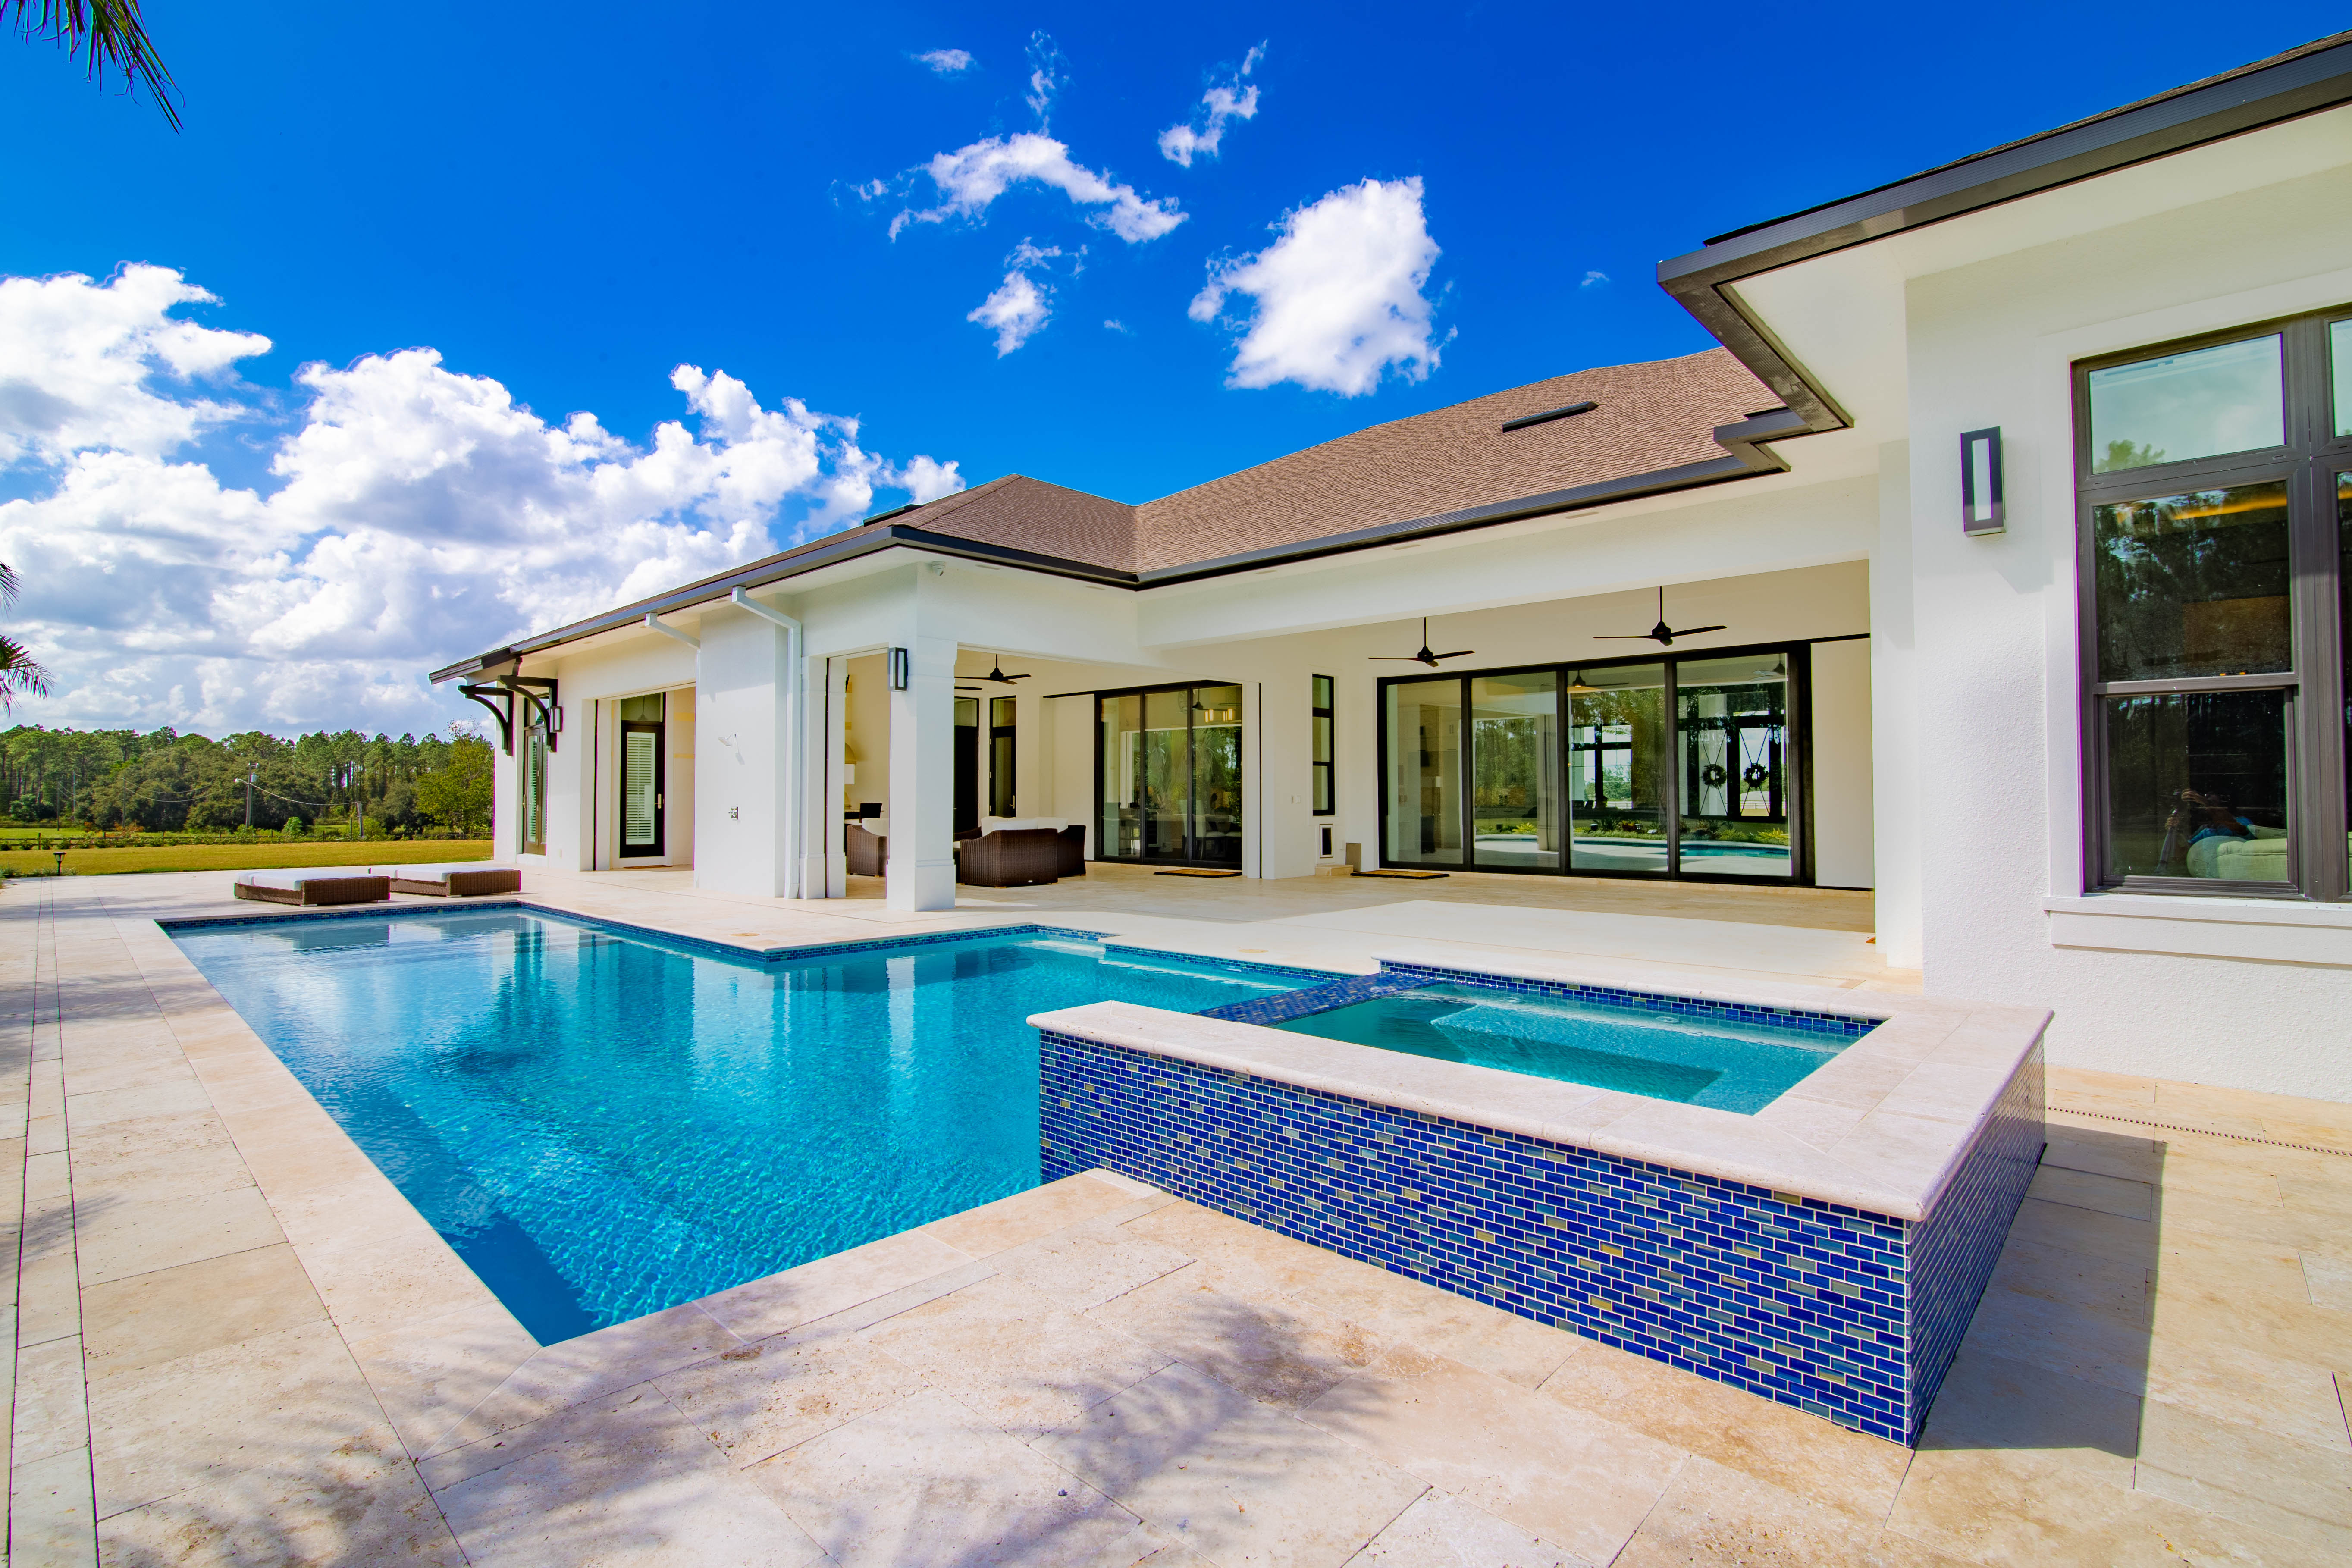 Naples Florida Real Estate Photos